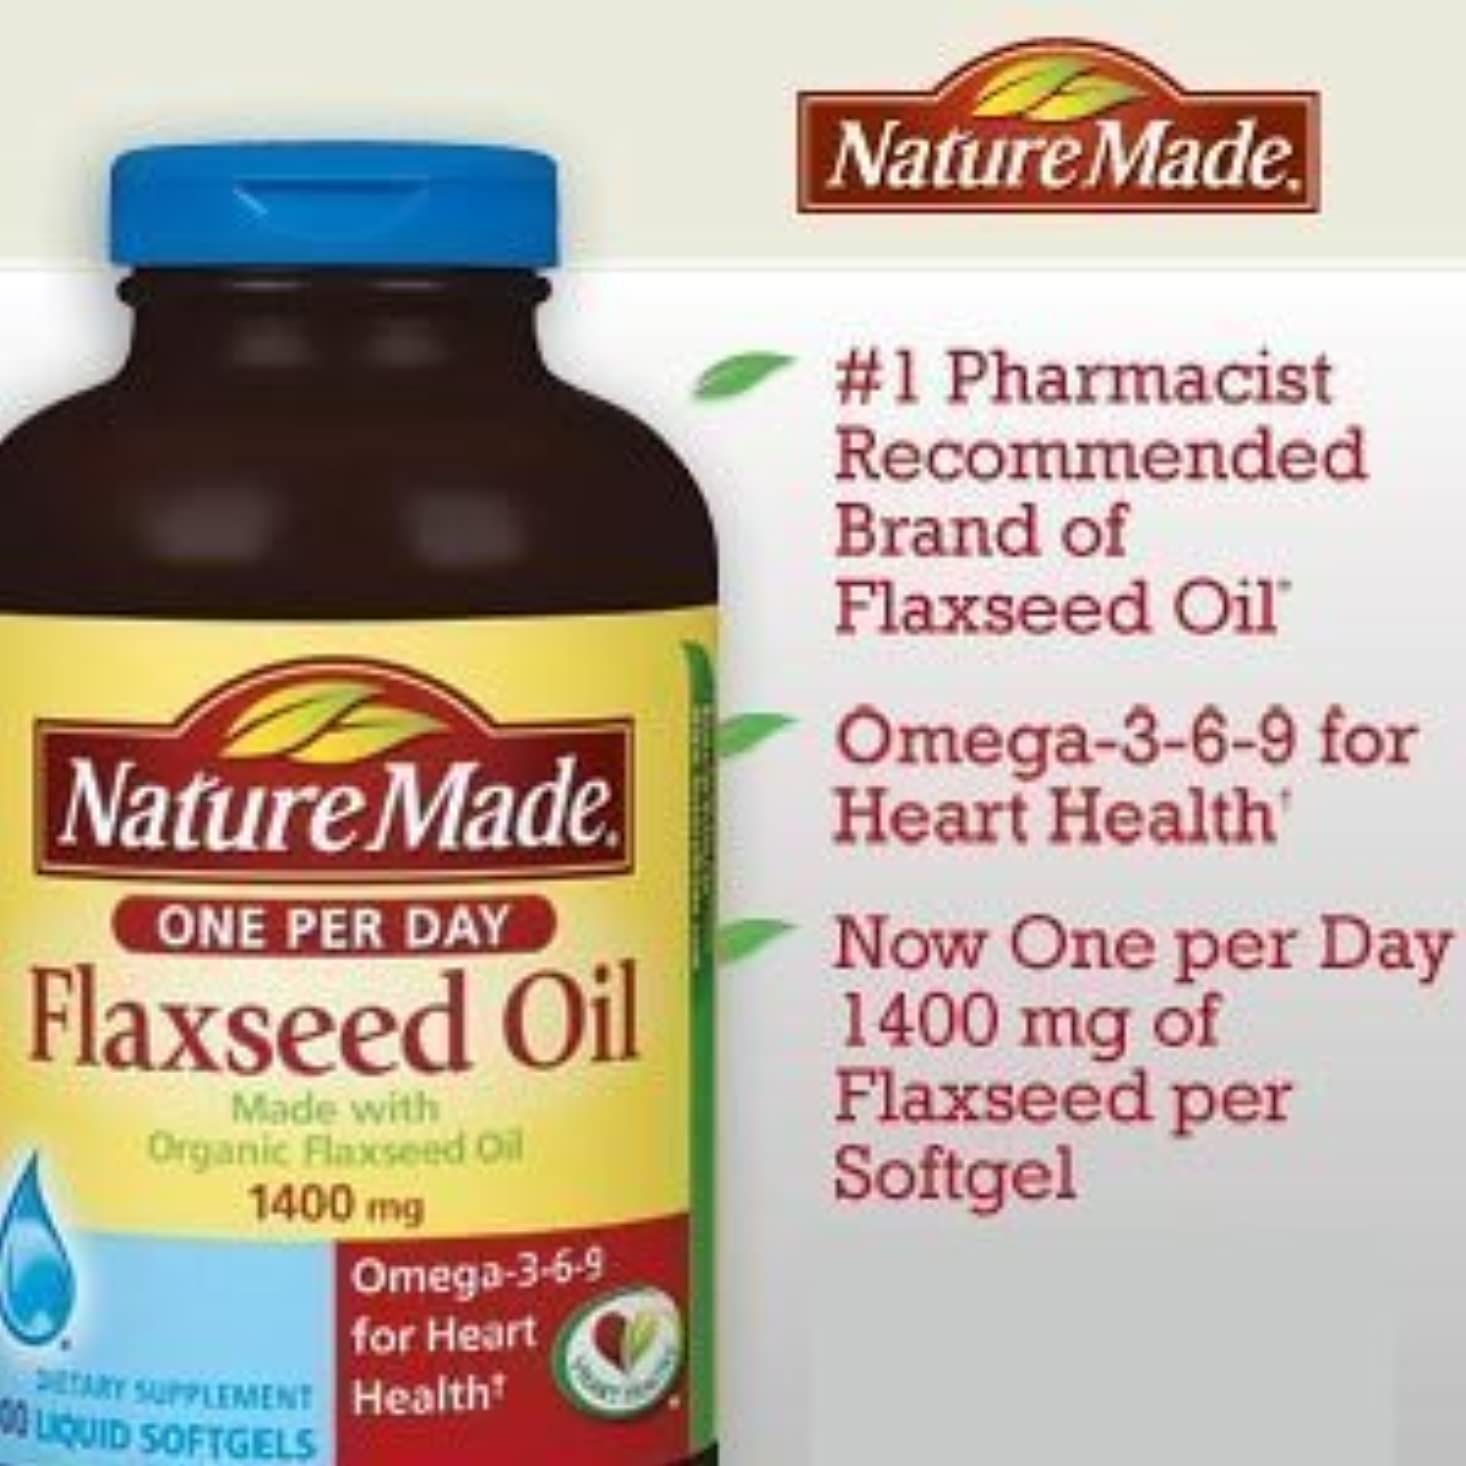 Nature Made Organic Flaxseed Oil, Omega-3-6-9 for Heart Health, 1400 mg, Liquid Softgels - 300 Count by USA [並行輸入品]